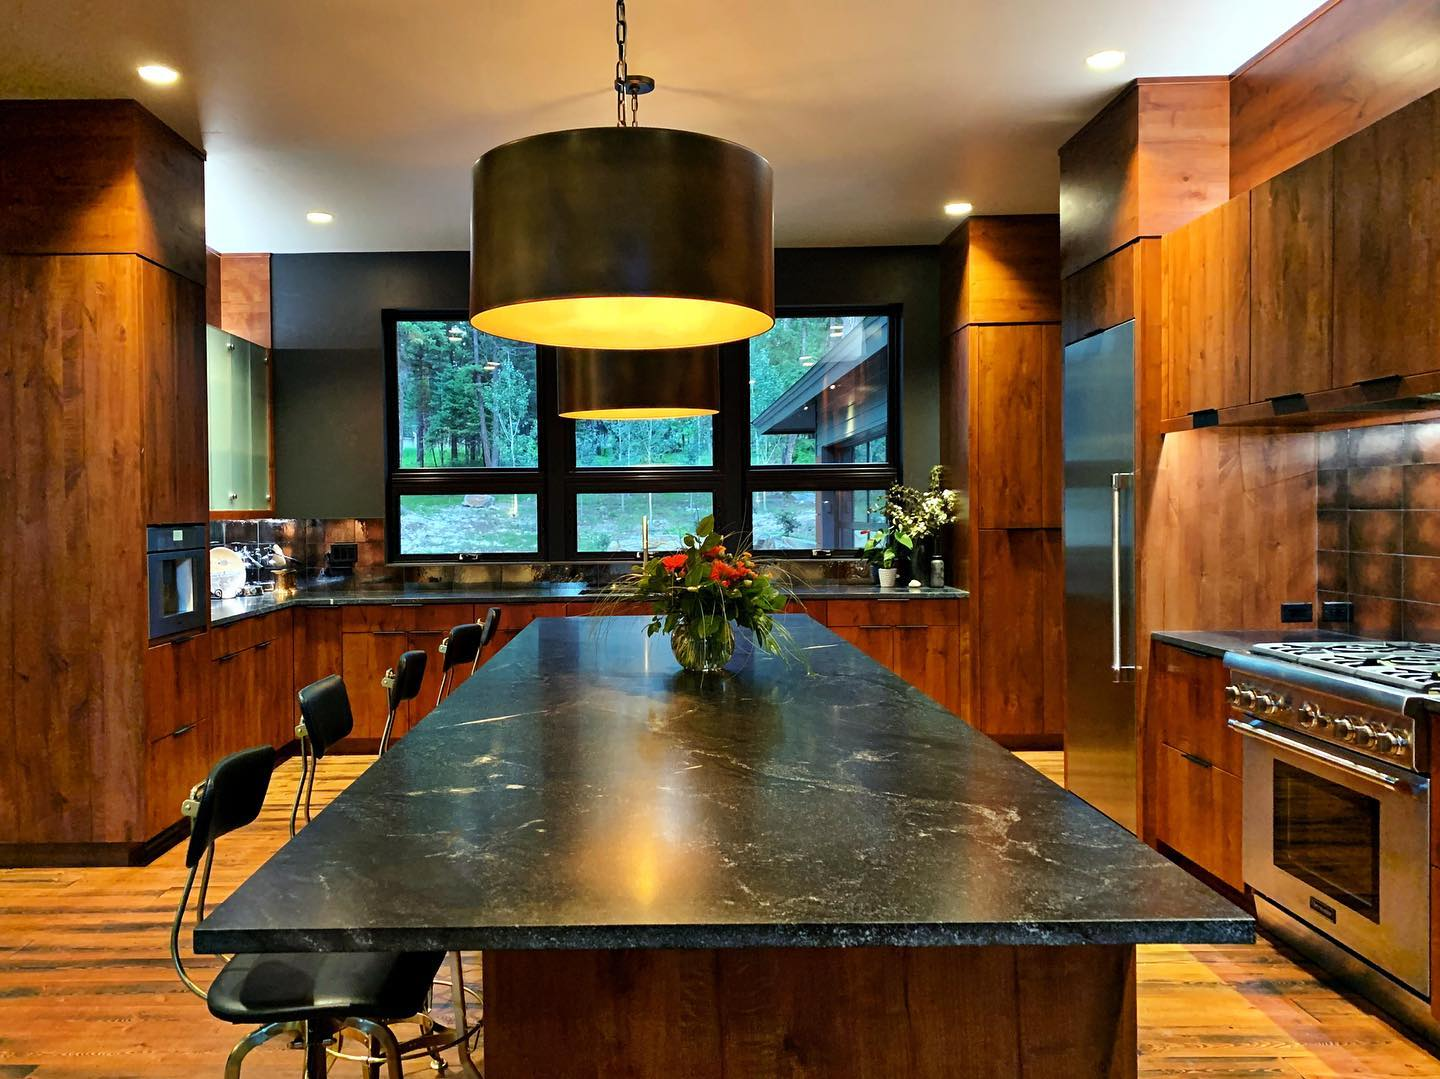 Thermador dream kitchen (I think we should enter the contest, don't you?) @thermadorhome whitefish custom home builder